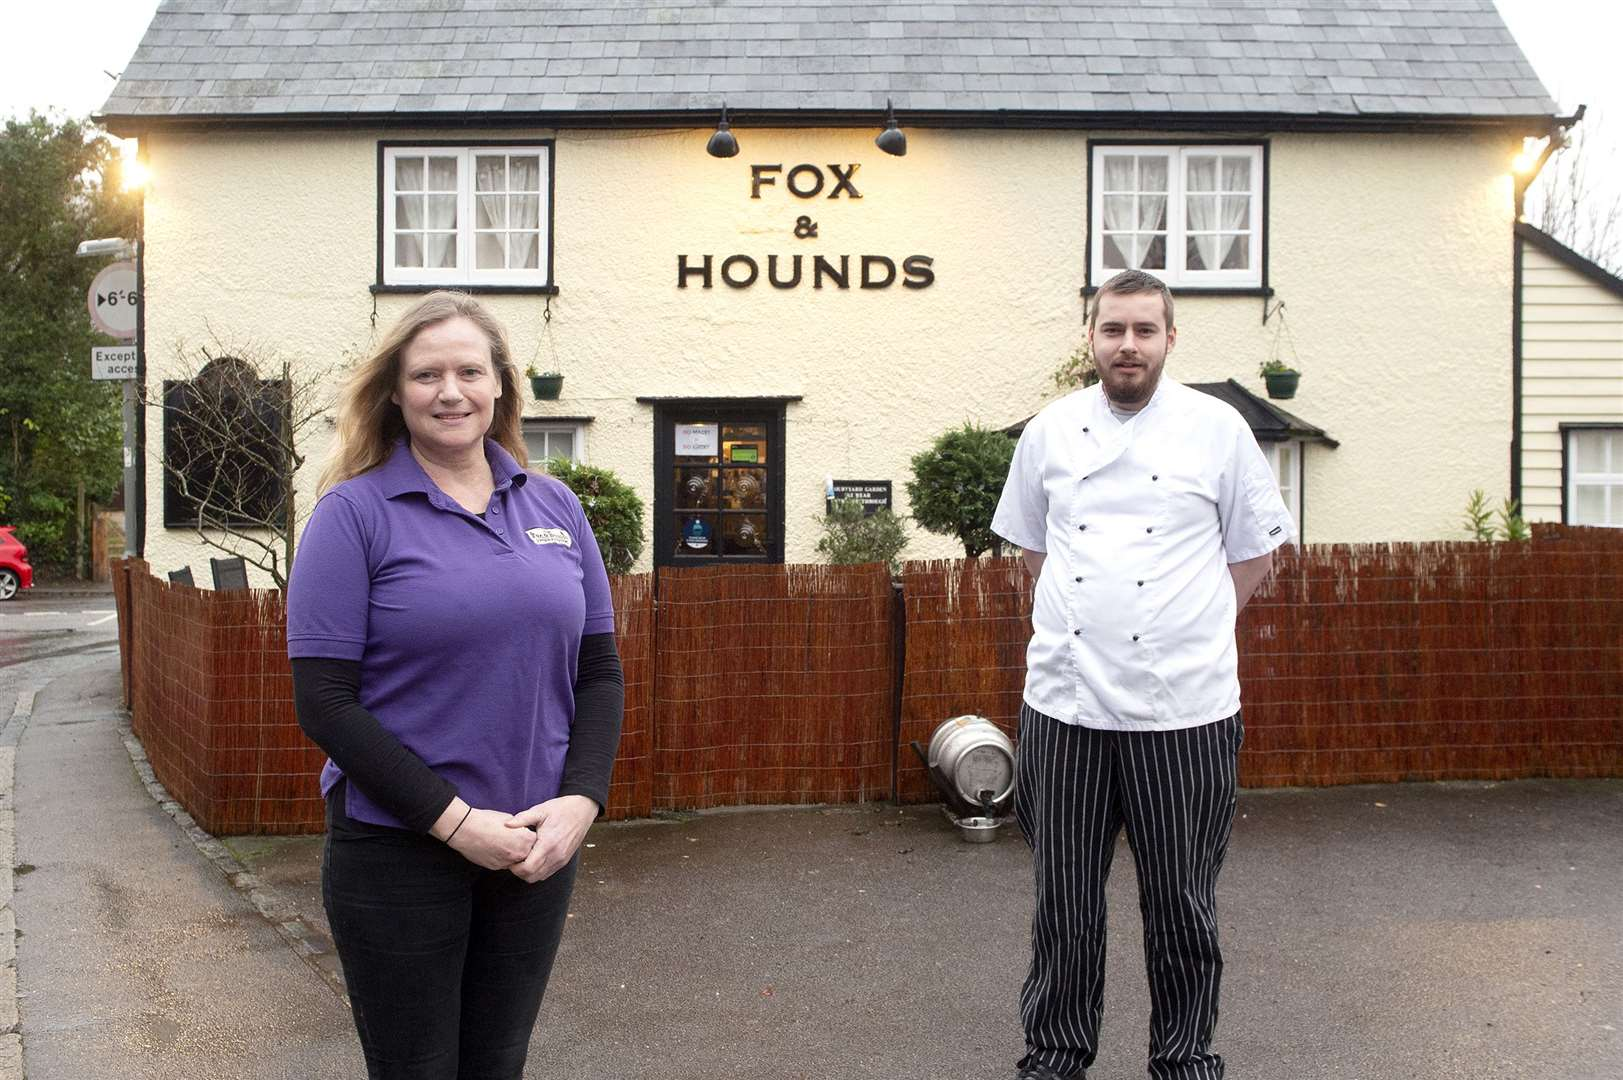 Kate Irwin, the owner of the Fox and Hounds in Steeple Bumpstead, along with head chef David Jackson. Picture by Mecha Morton.